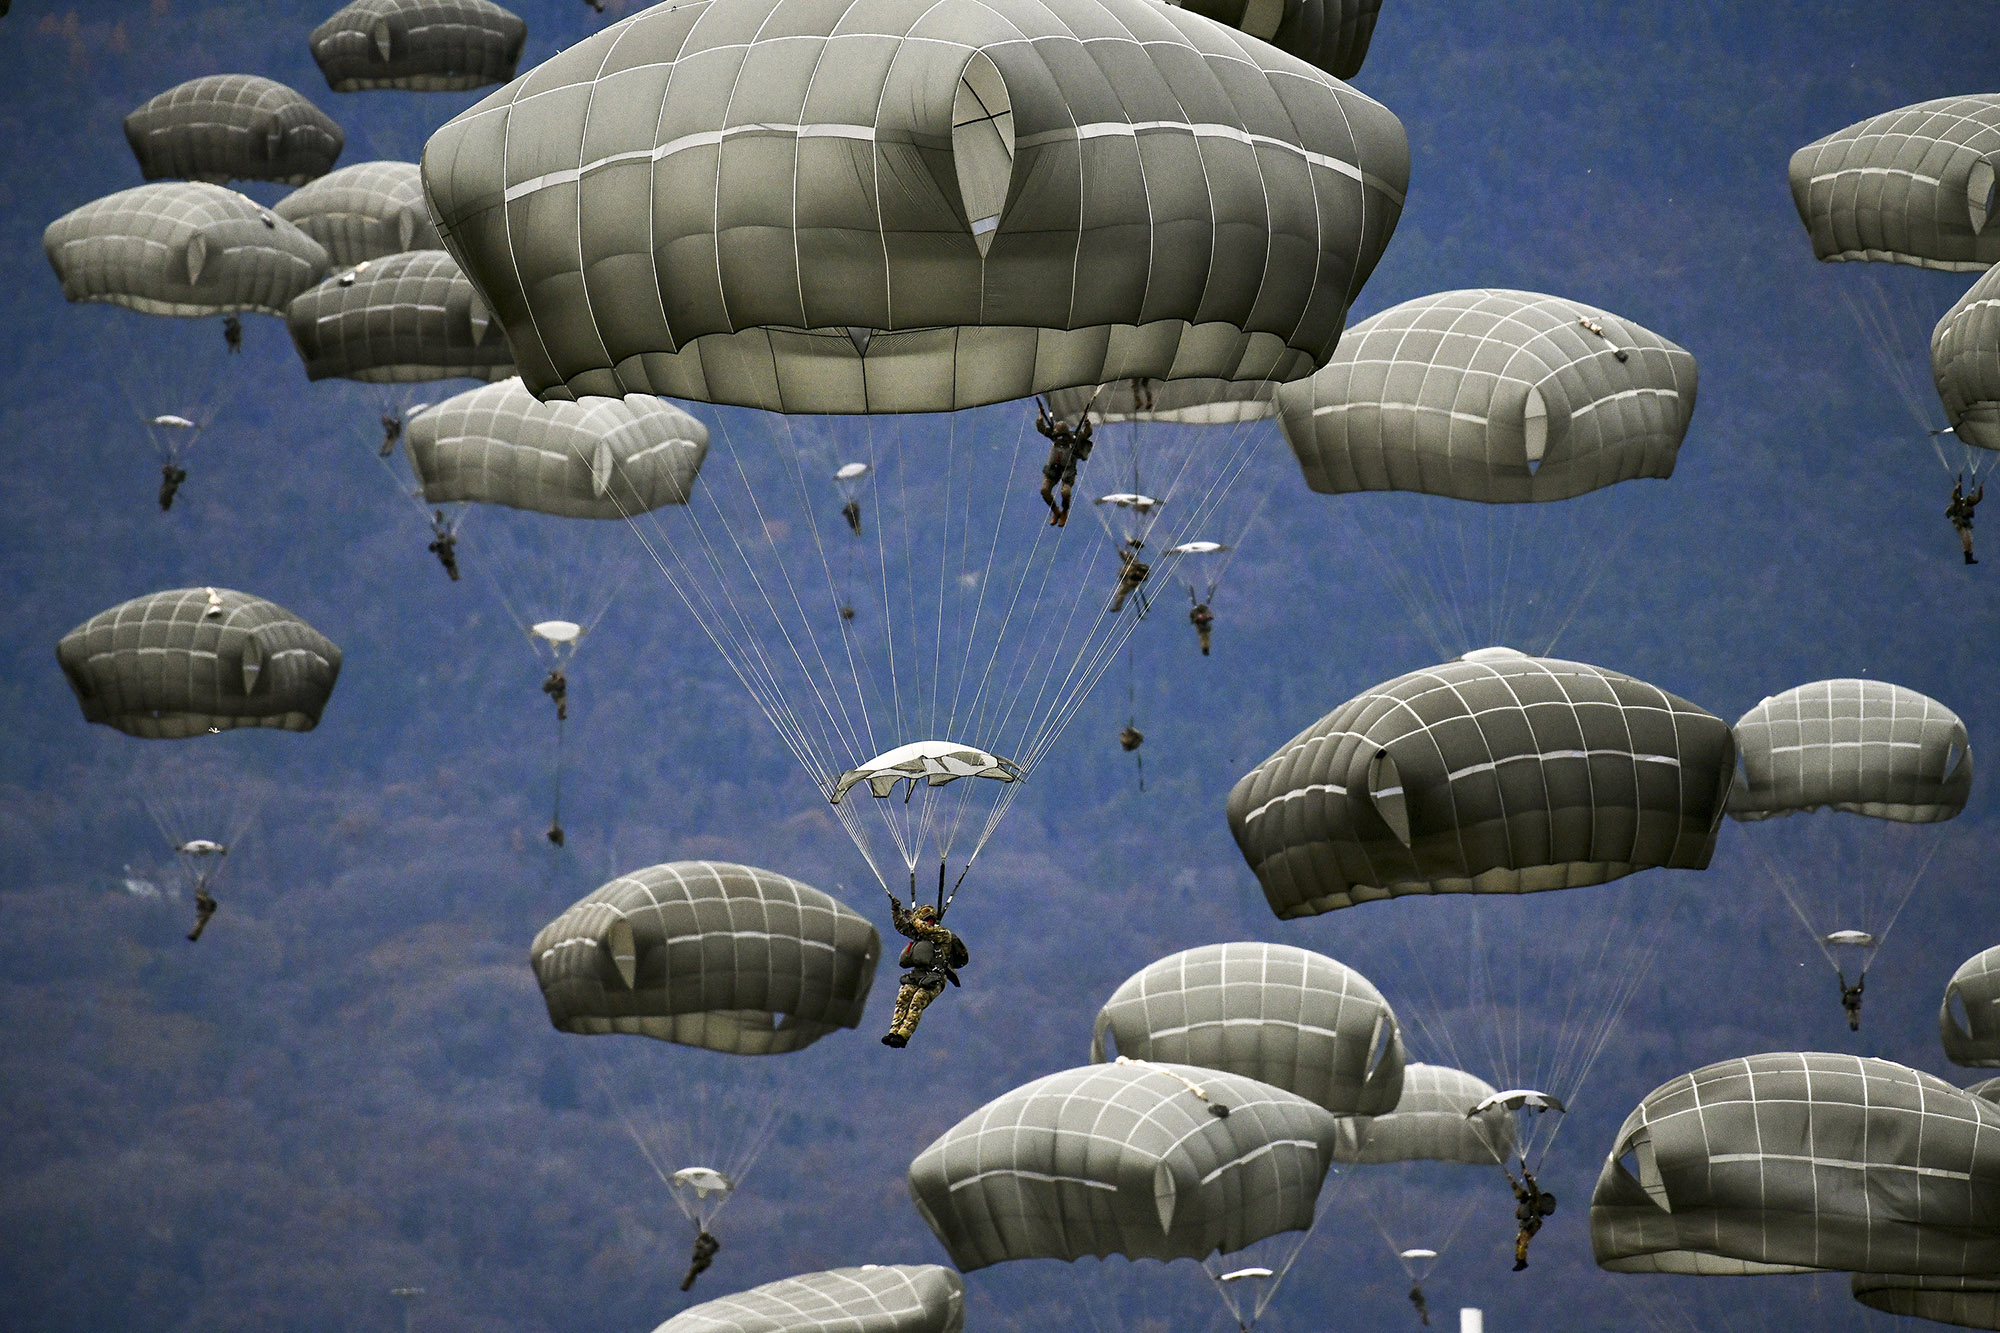 U.S. Army and Italian Army paratroopers conduct airborne operations after exiting a U.S. Air Force C-130 Hercules aircraft at Juliet Drop Zone, Pordenone, Italy, Dec. 10, 2020. (Paolo Bovo/Army)